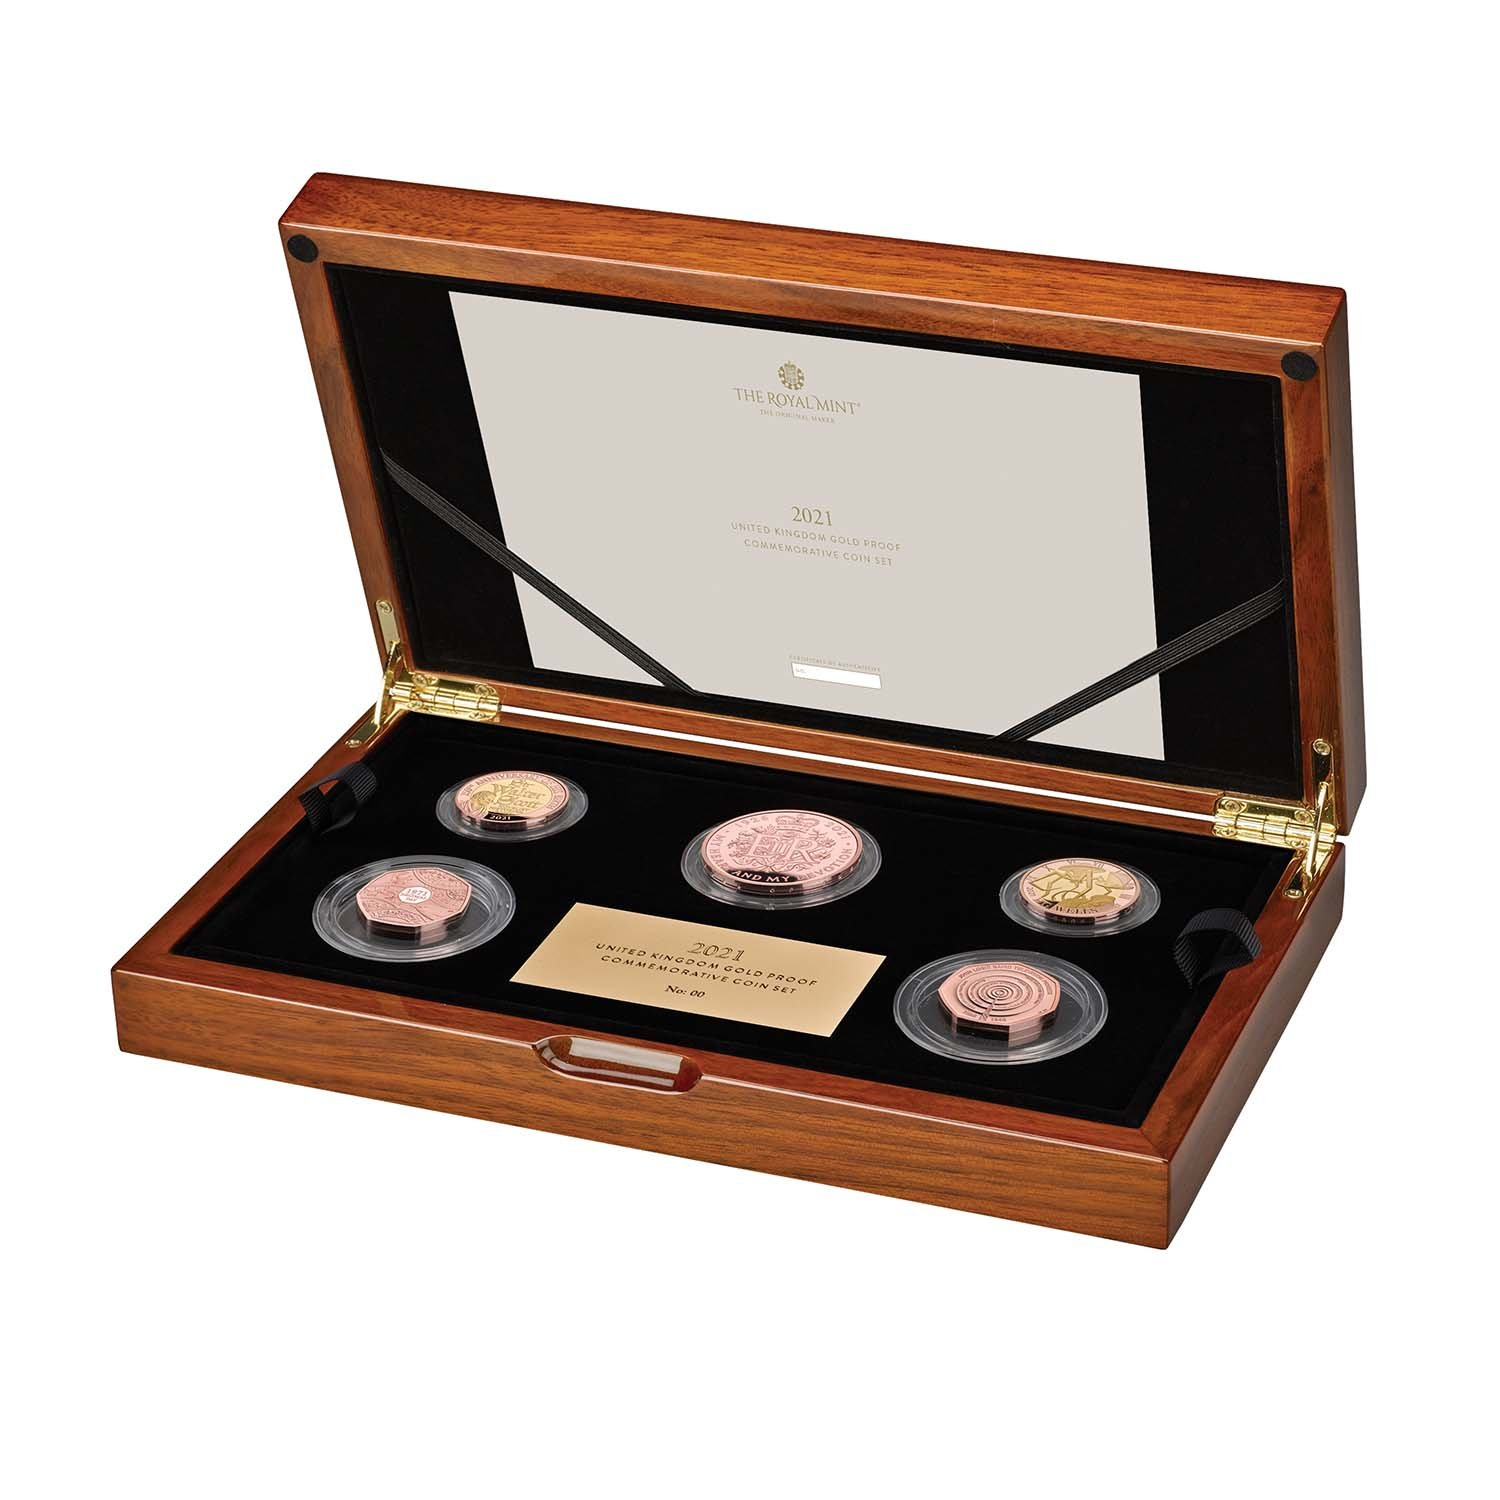 2021 United Kingdom Gold Proof Commemorative Coin Set